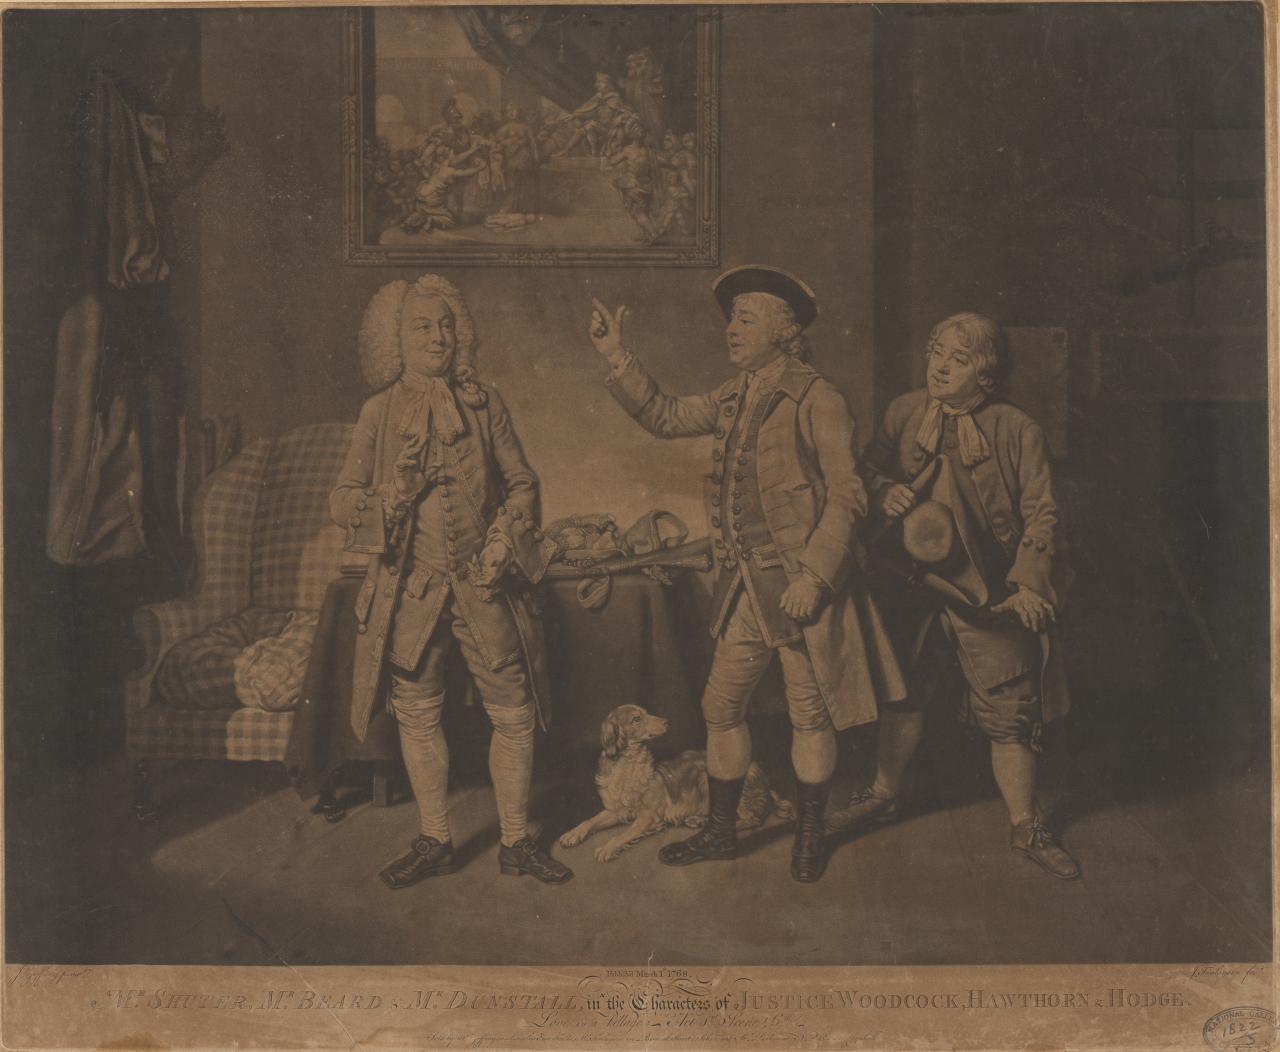 Mr Shuter,Mr Beard and Mr Dunstan: Theatrical Scene